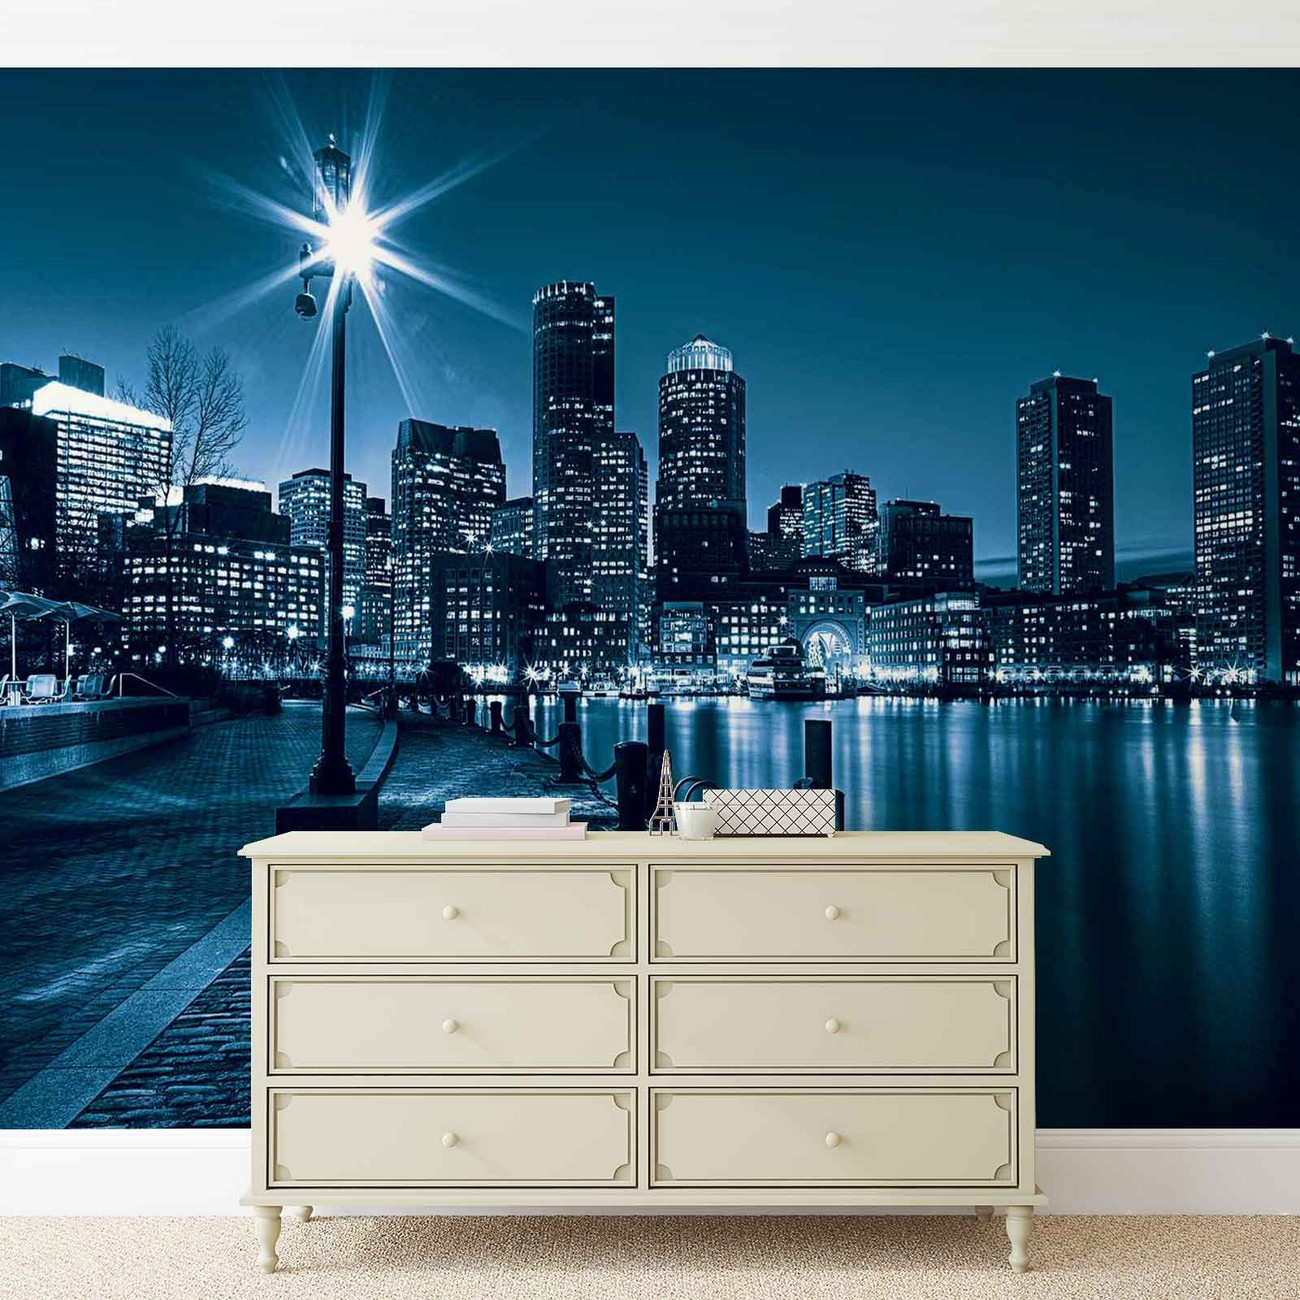 City boston skyline wall paper mural buy at europosters for City skyline wall mural